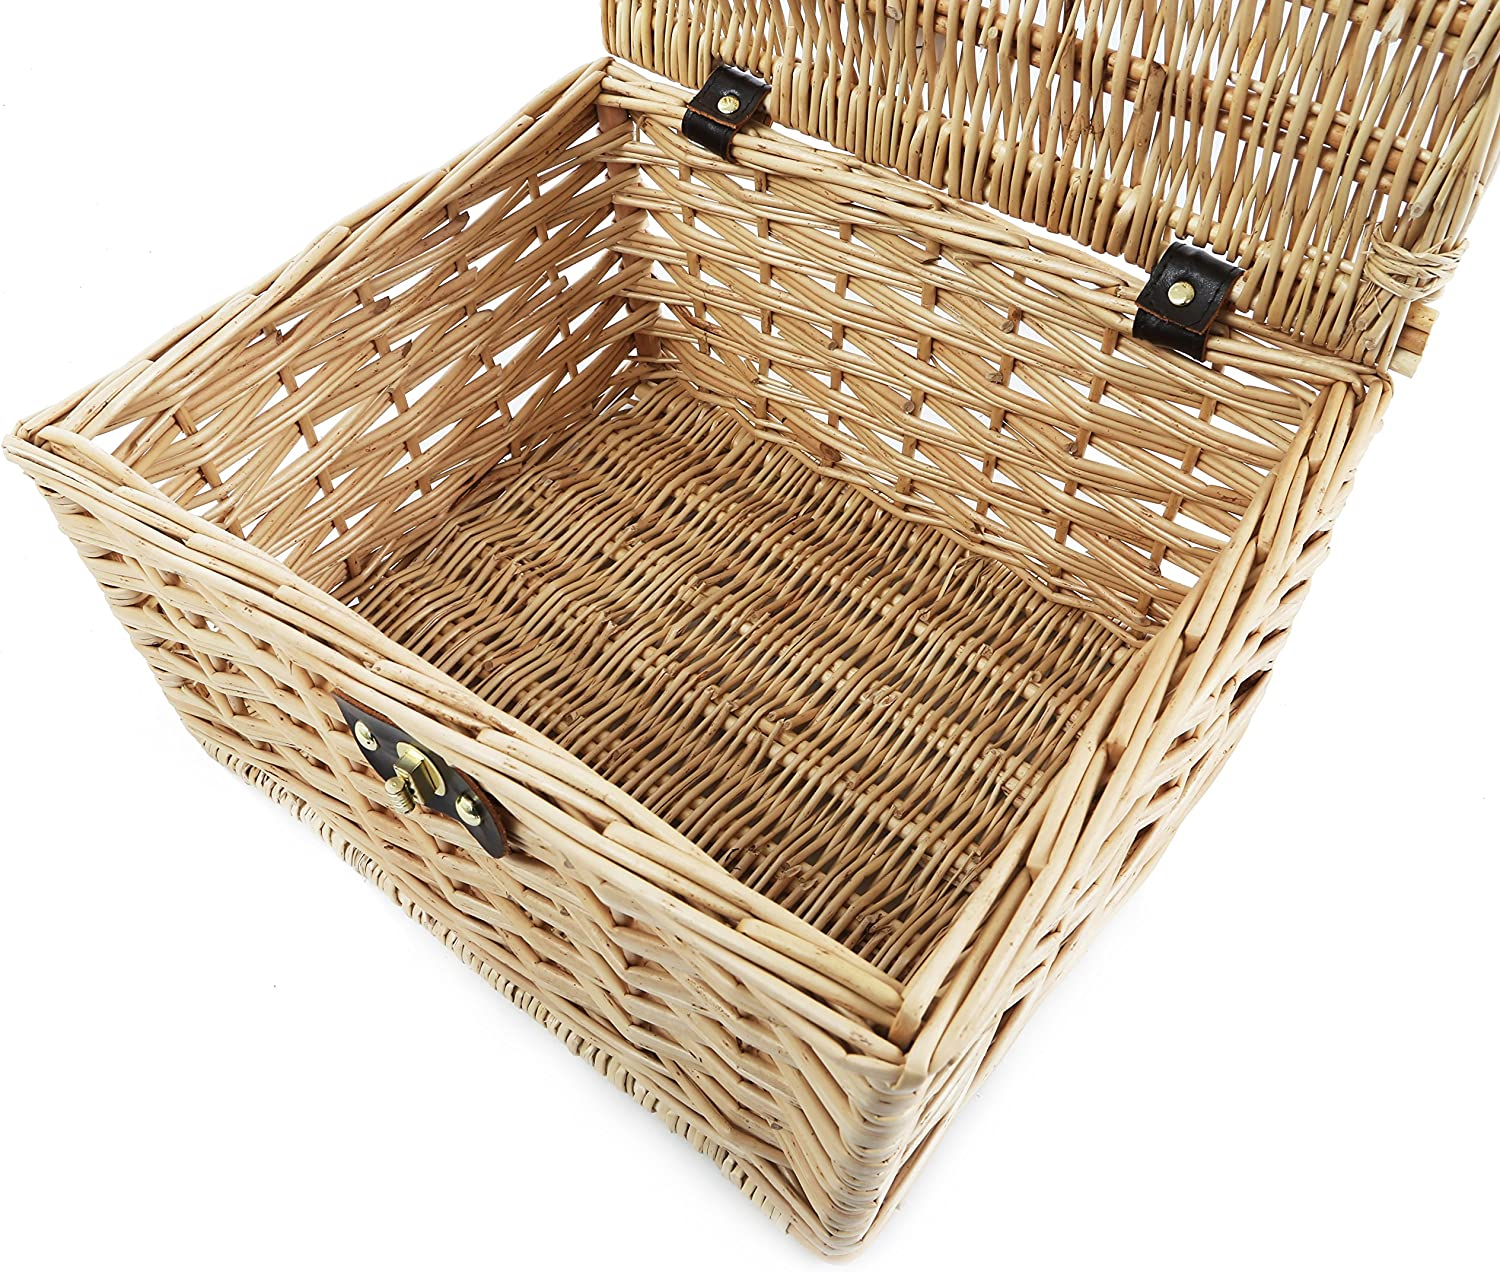 Greenfield Collection Luxury Mayfair Willow Picnic Hamper